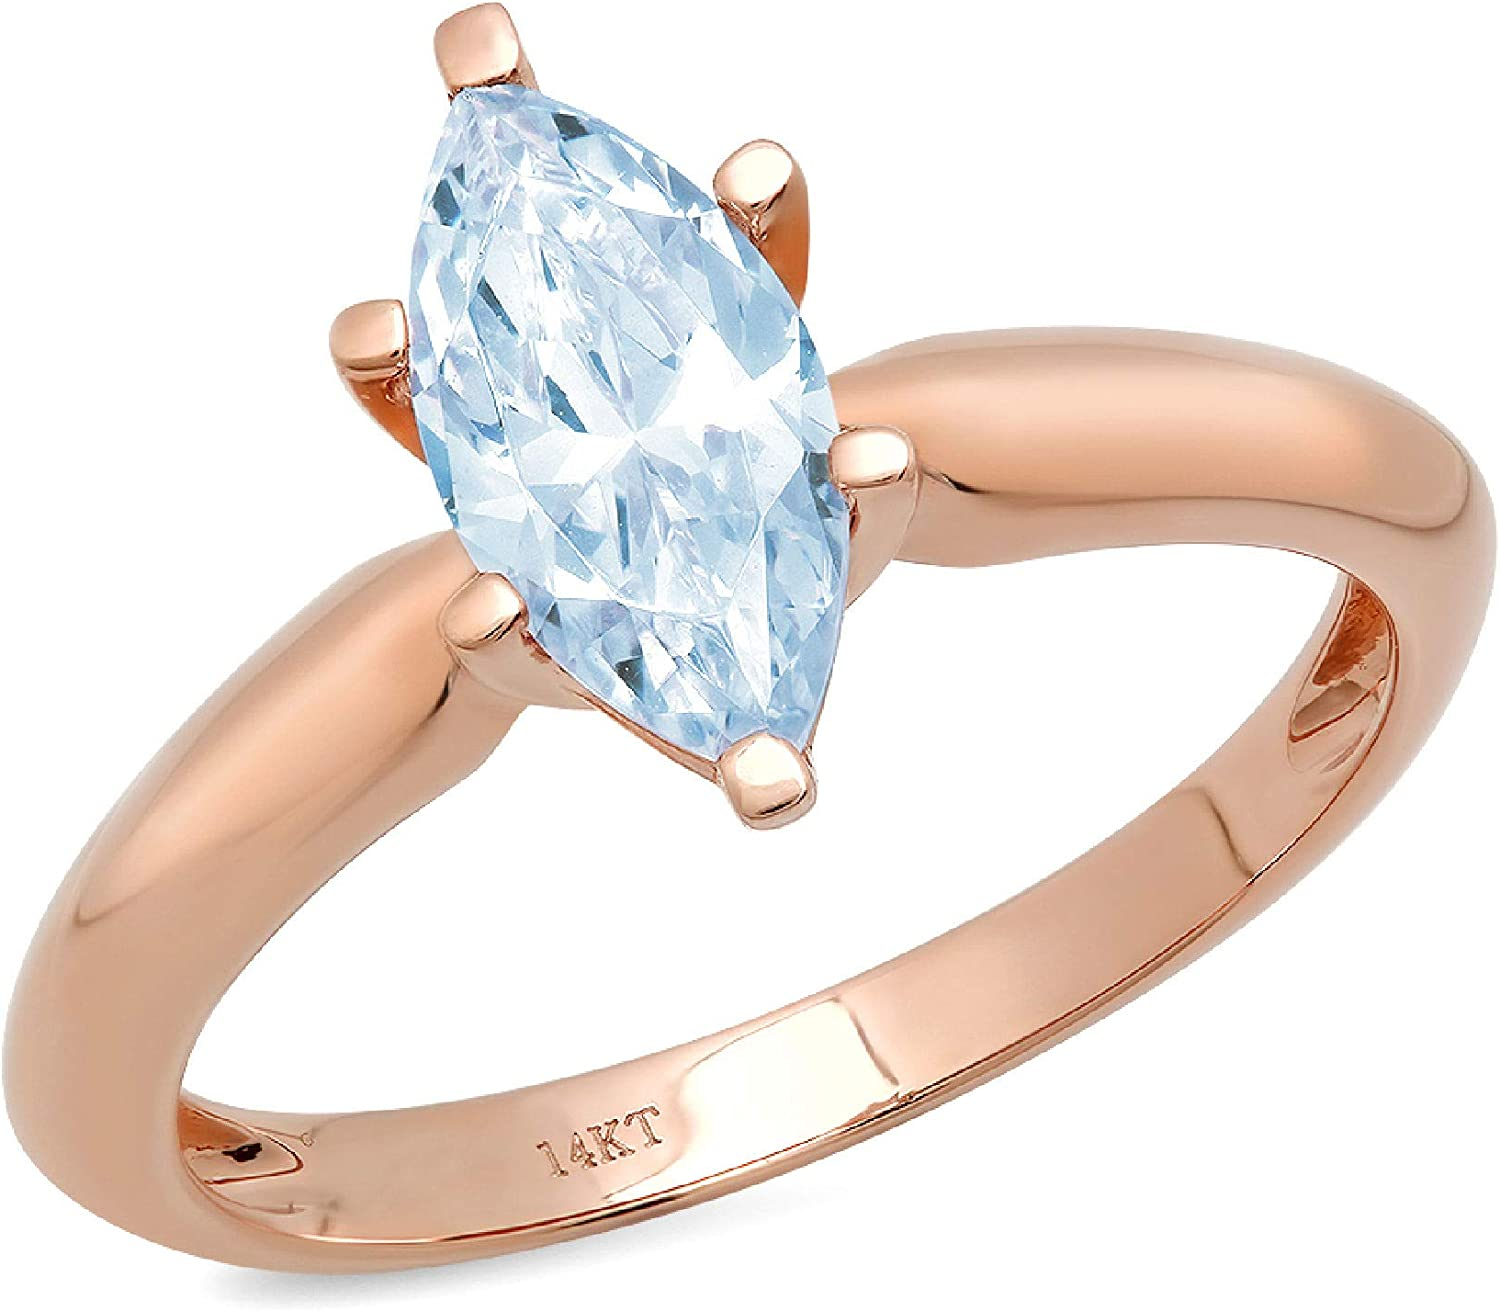 1.1 Mail order cheap ct Brilliant Marquise Cut Large-scale sale Solitaire Flawless Blue S Stunning